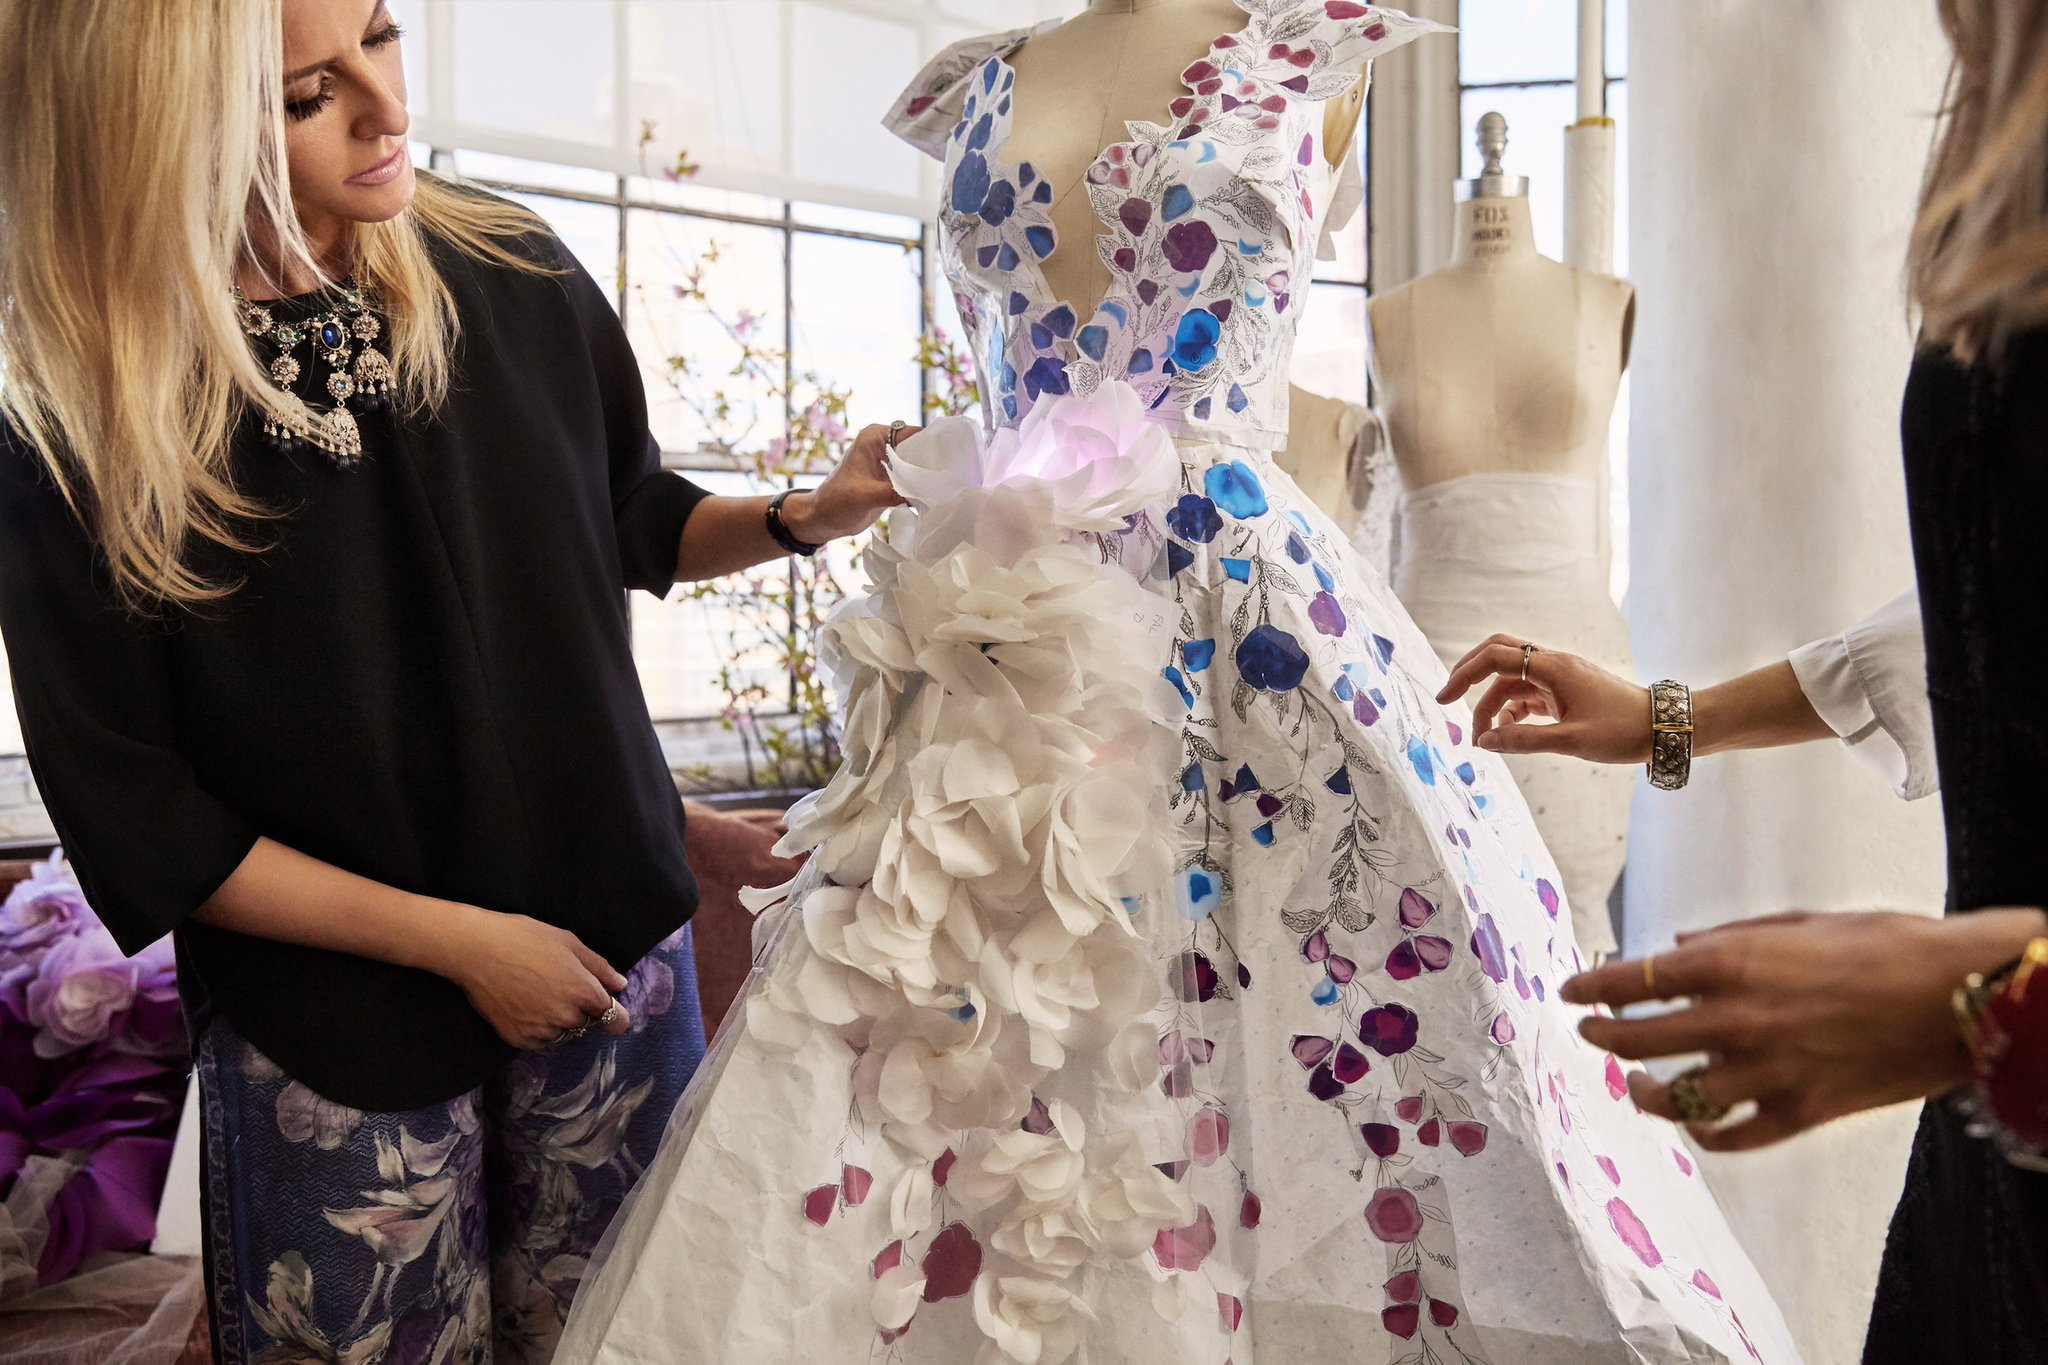 Head over to Facebook for a live Q&A with the Marchesa #CognitiveDress designers -> https://t.co/000yOW3Ppm https://t.co/MhZBQrwjls